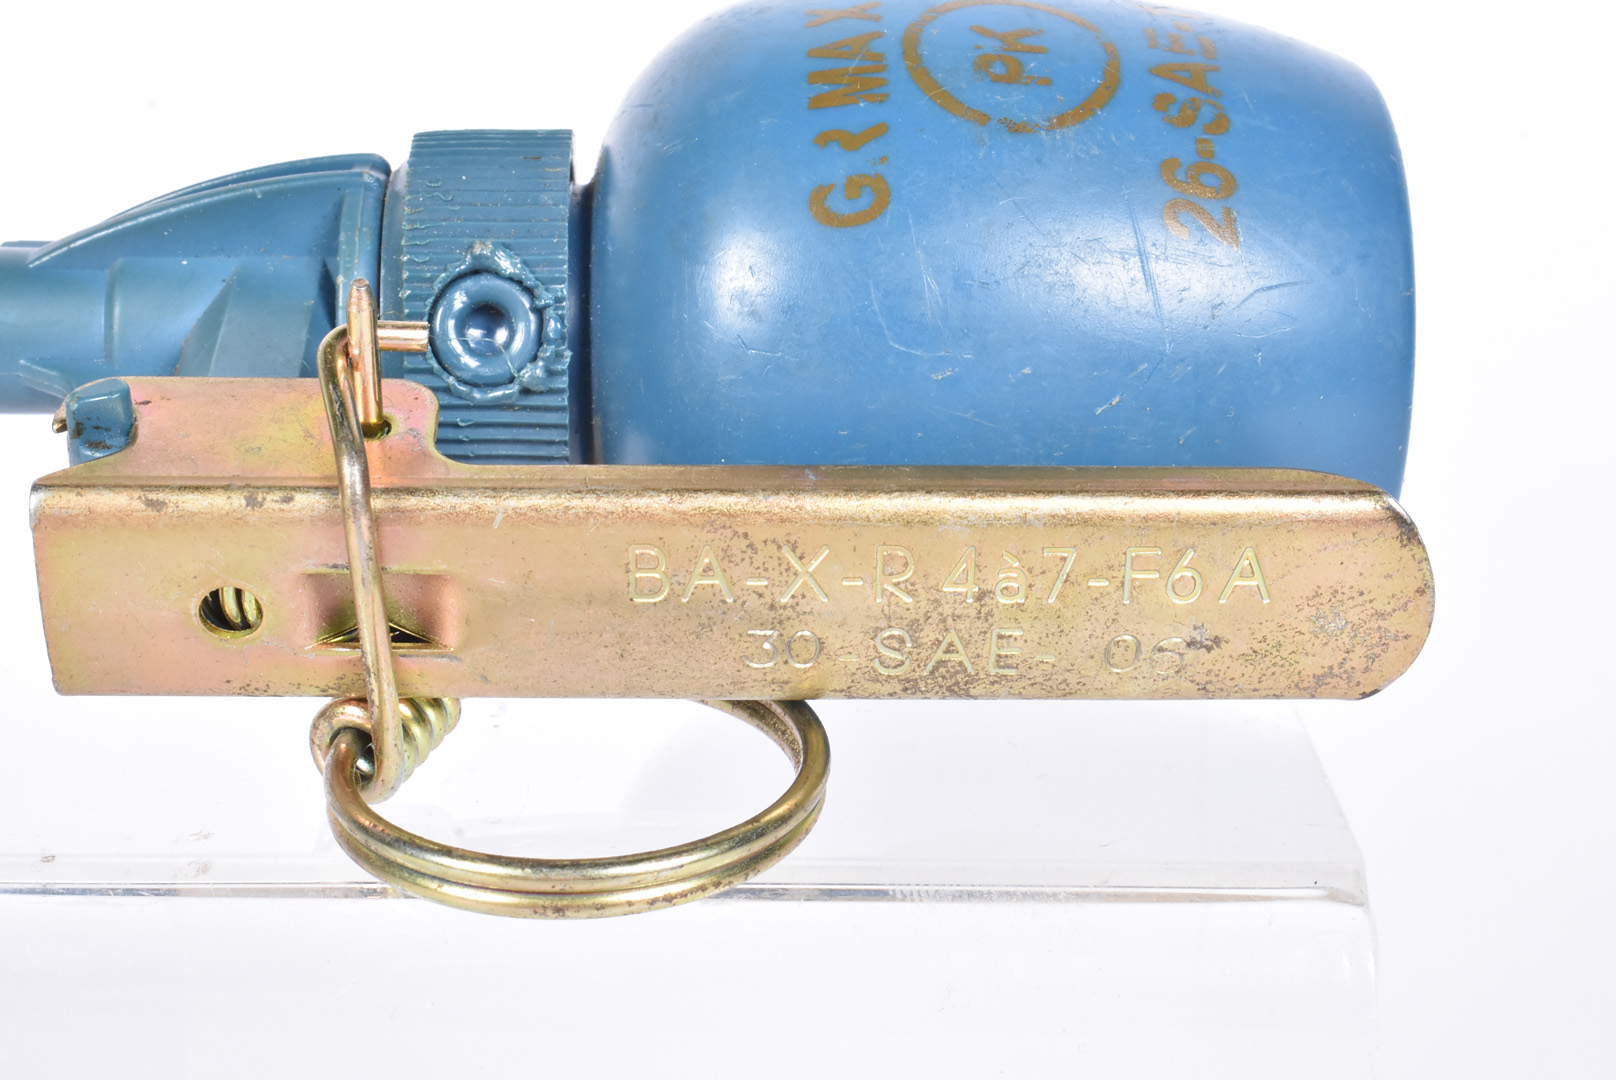 An inert French M51 practice grenade, having blue body with stamp, complete with spoon and pin, also - Image 3 of 4